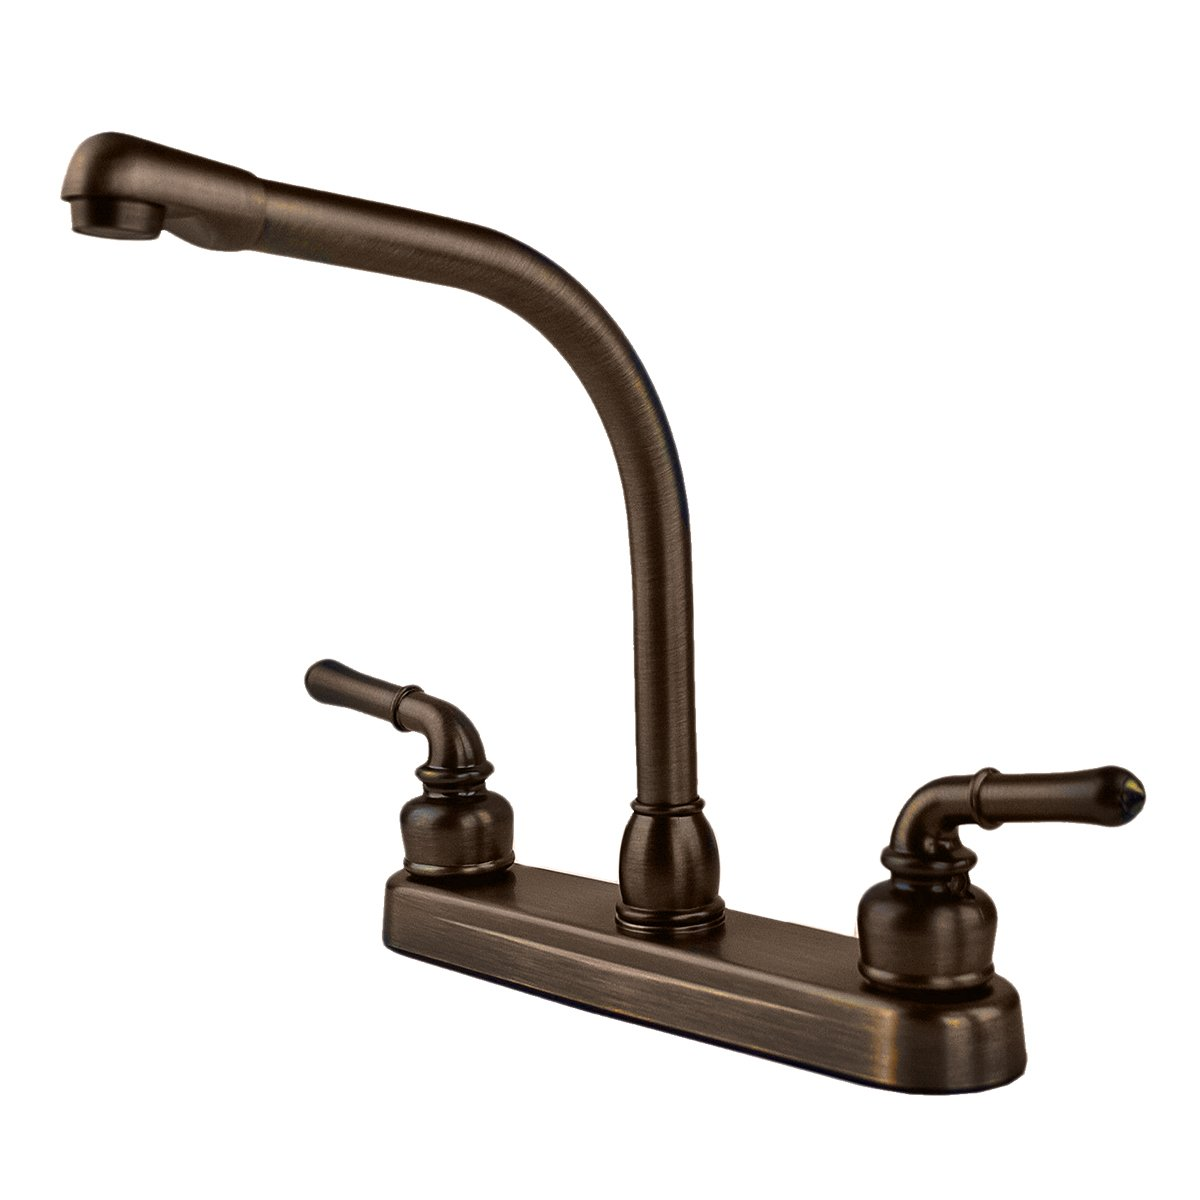 RV Mobile Home High Rise Kitchen Sink Faucet, Oil Rubbed Bronze